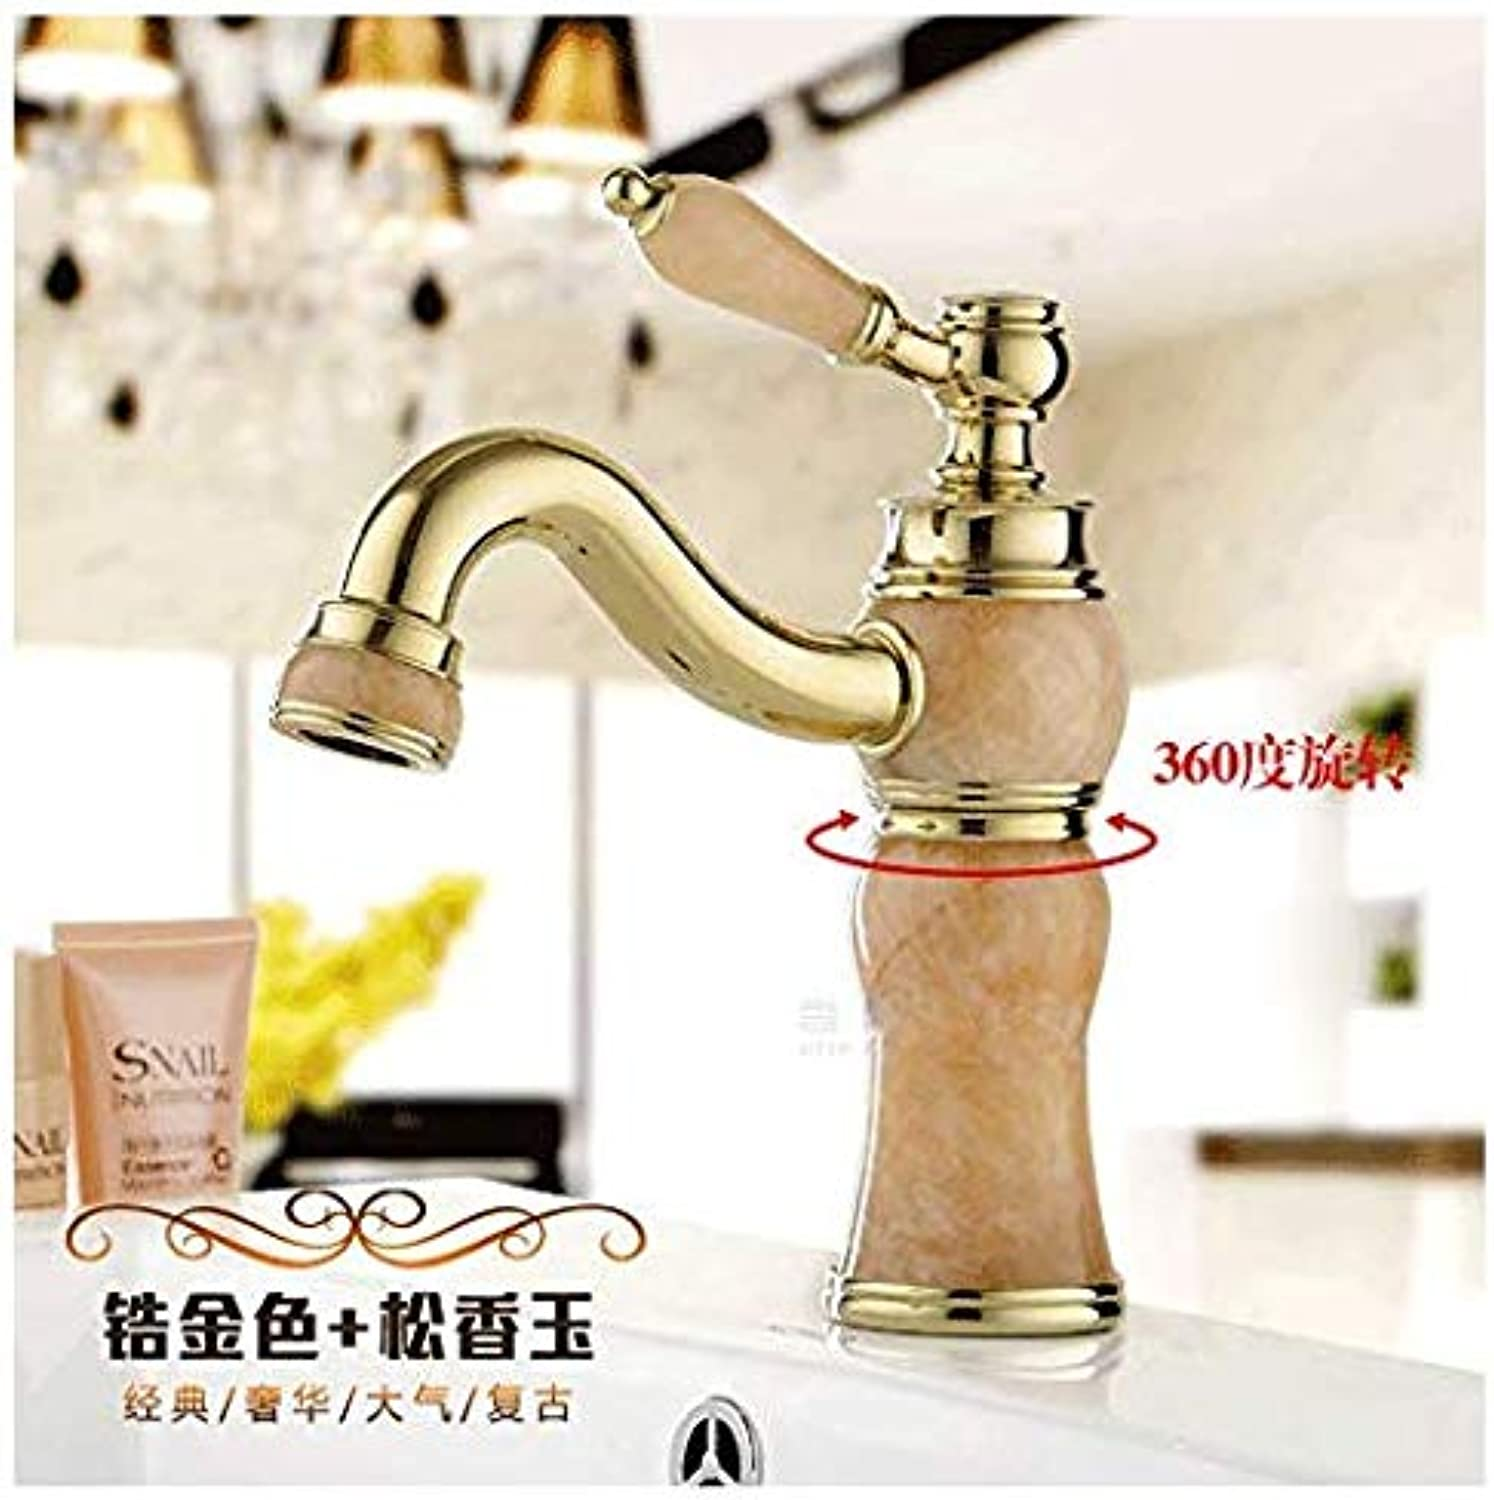 Modern Double Basin Sink Hot and Cold Water Faucetfaucet European gold Single Hole Basin Basin redating, Zirconium gold Round Cover Rosin Yellow redating